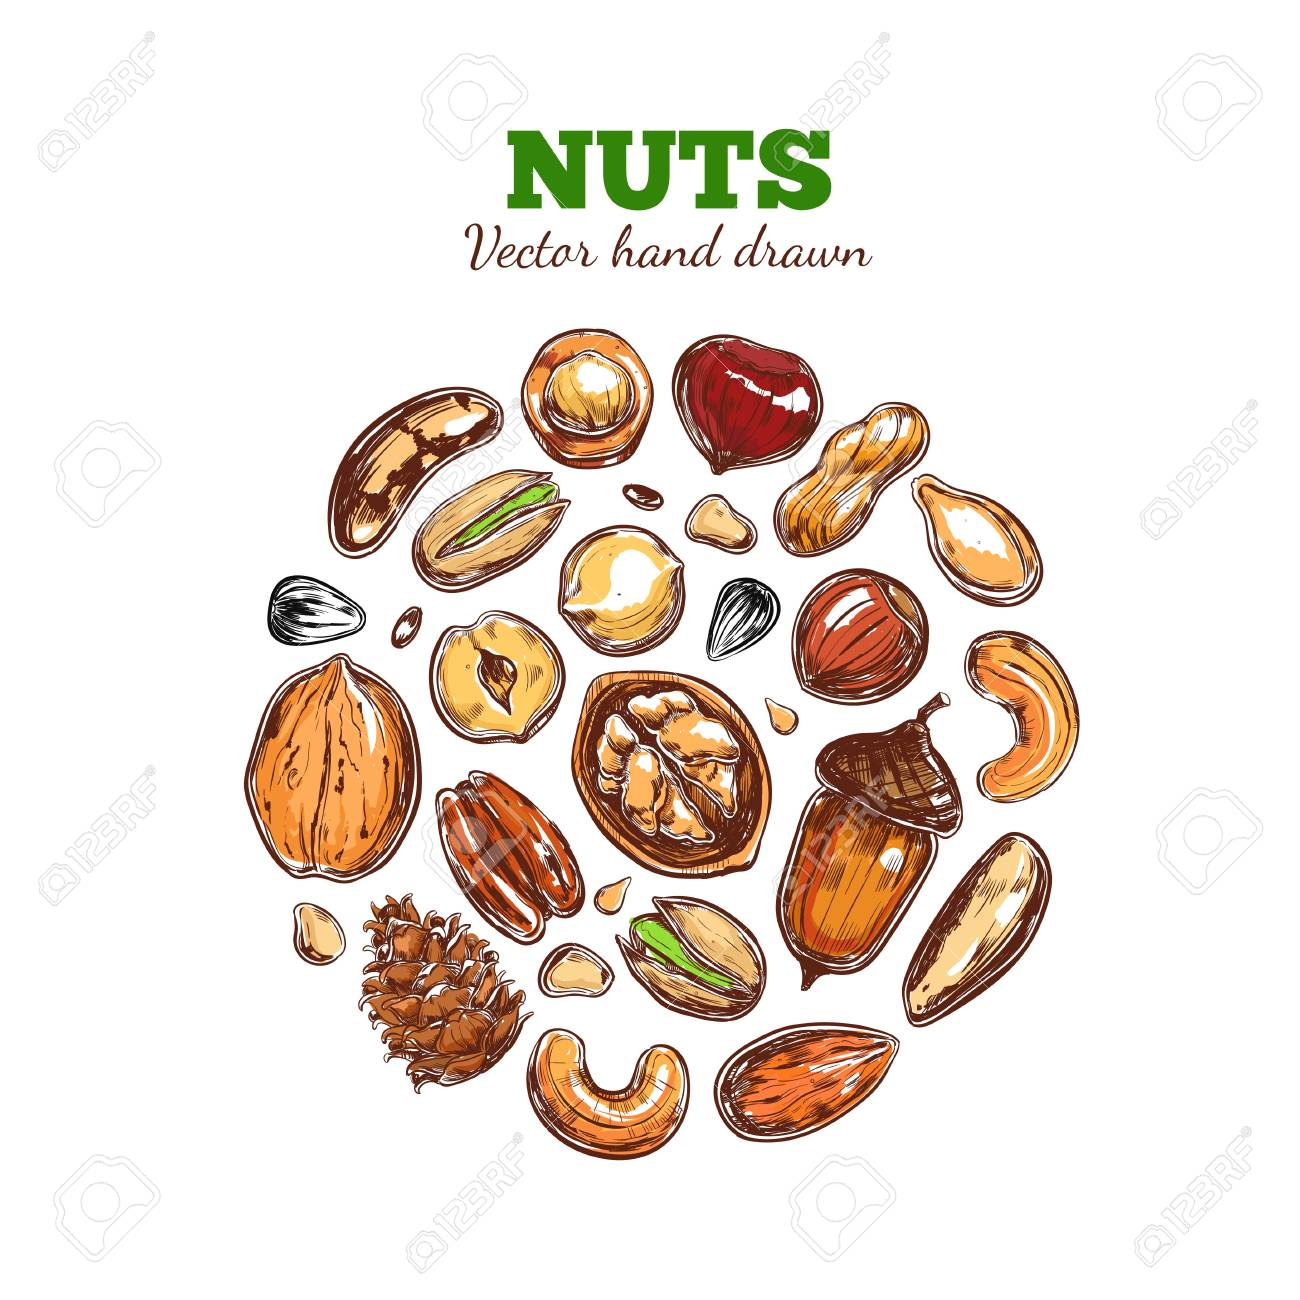 Nuts and seeds collection. Archivio Fotografico - 91055826